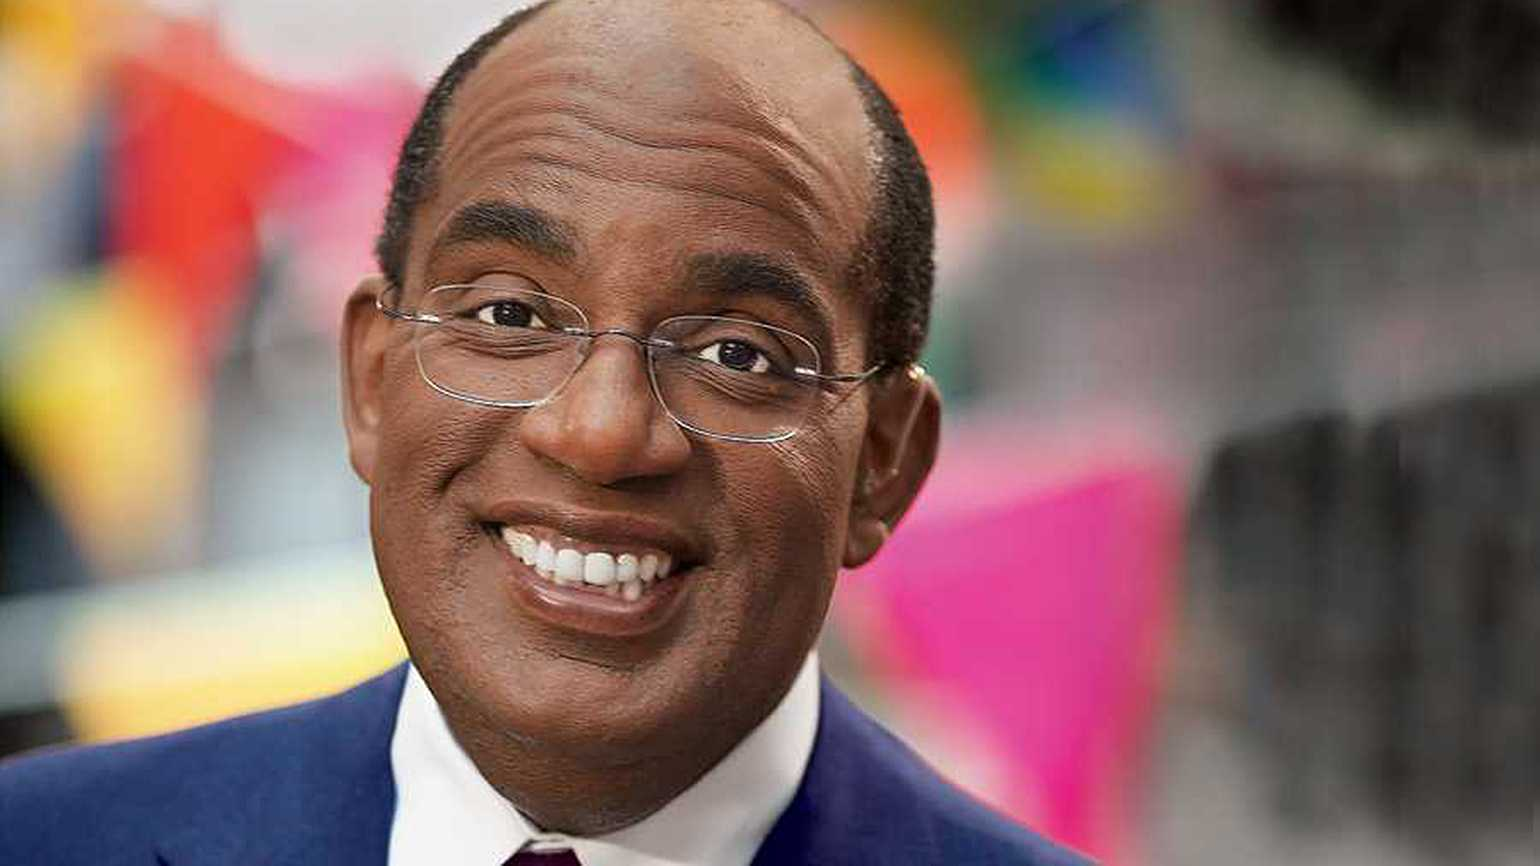 Guideposts: Today Show host and weatherman Al Roker